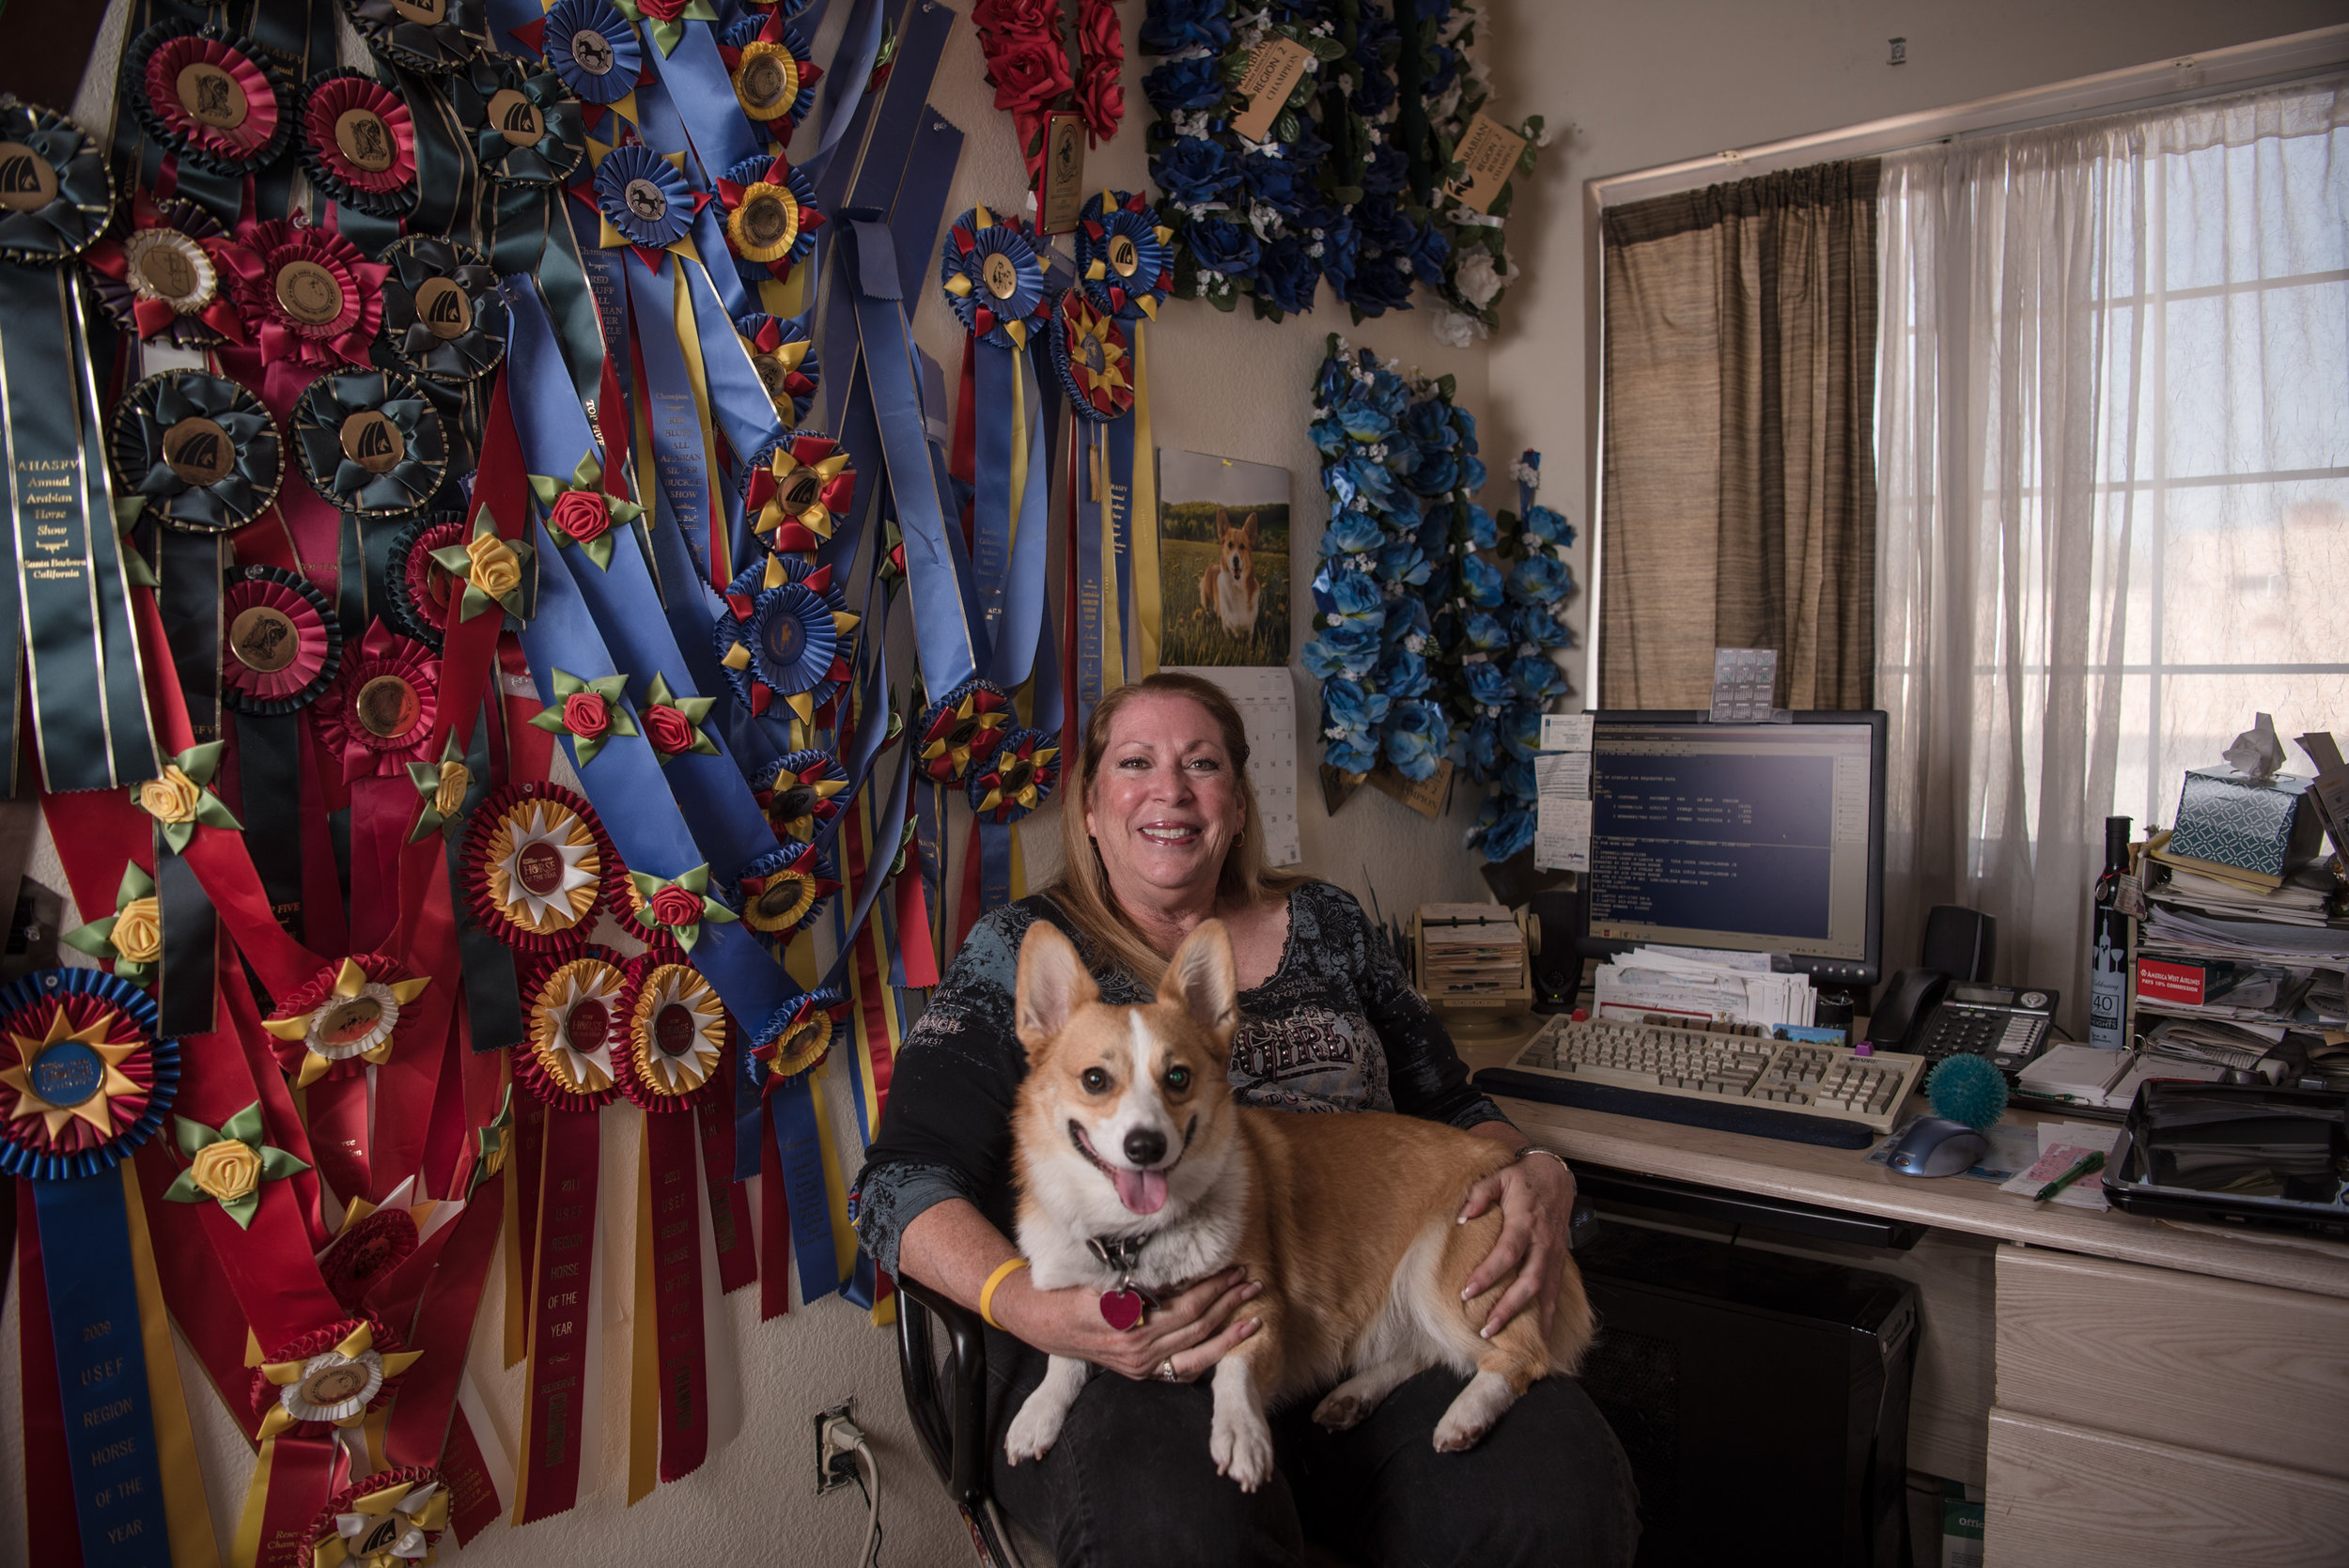 Patty Romeo, a travel agent and show horse judge, in her home on Friday, July 21, 2017, in Las Vegas. Morgan Lieberman Las Vegas Review-Journal